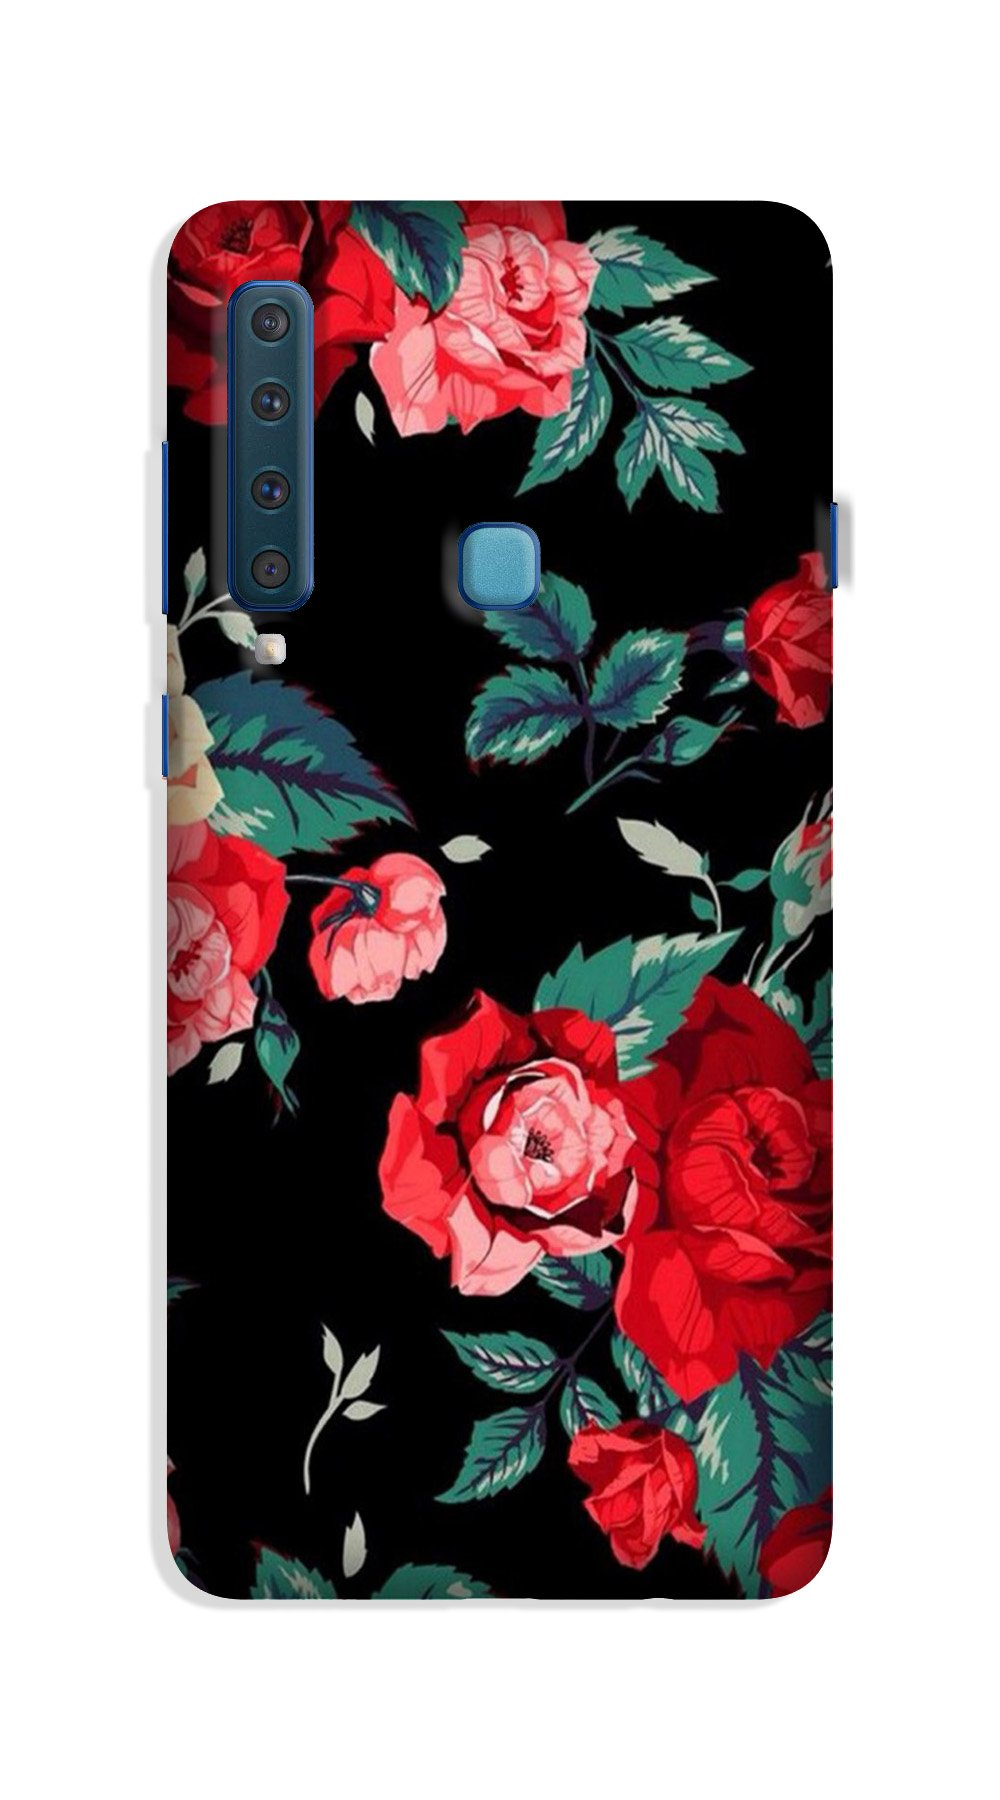 Red Rose2 Case for Galaxy A9 (2018)